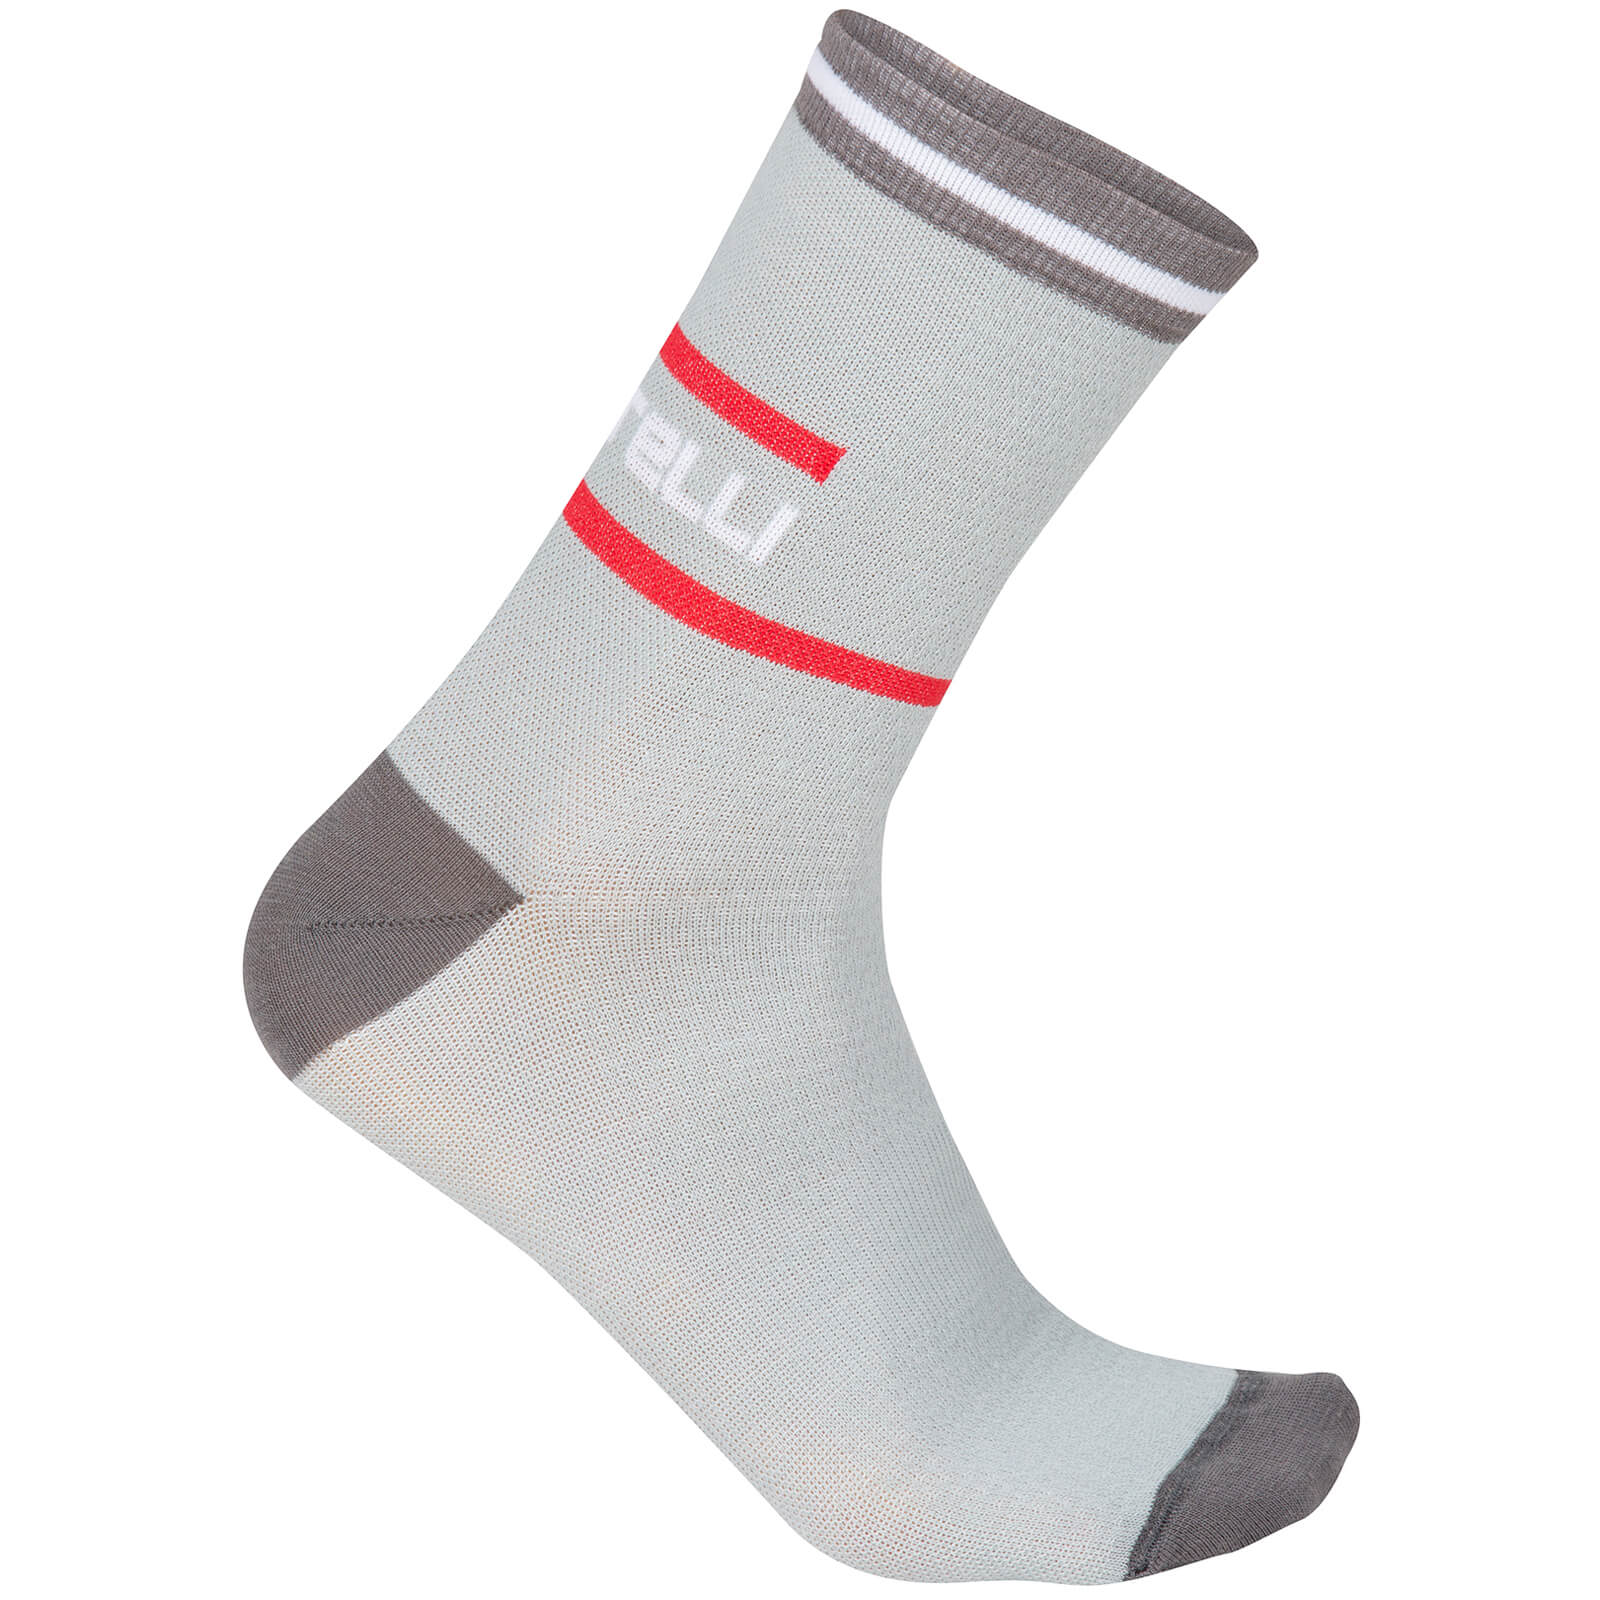 Castelli Incendio 15 Cycling Socks - Black/Anthracite